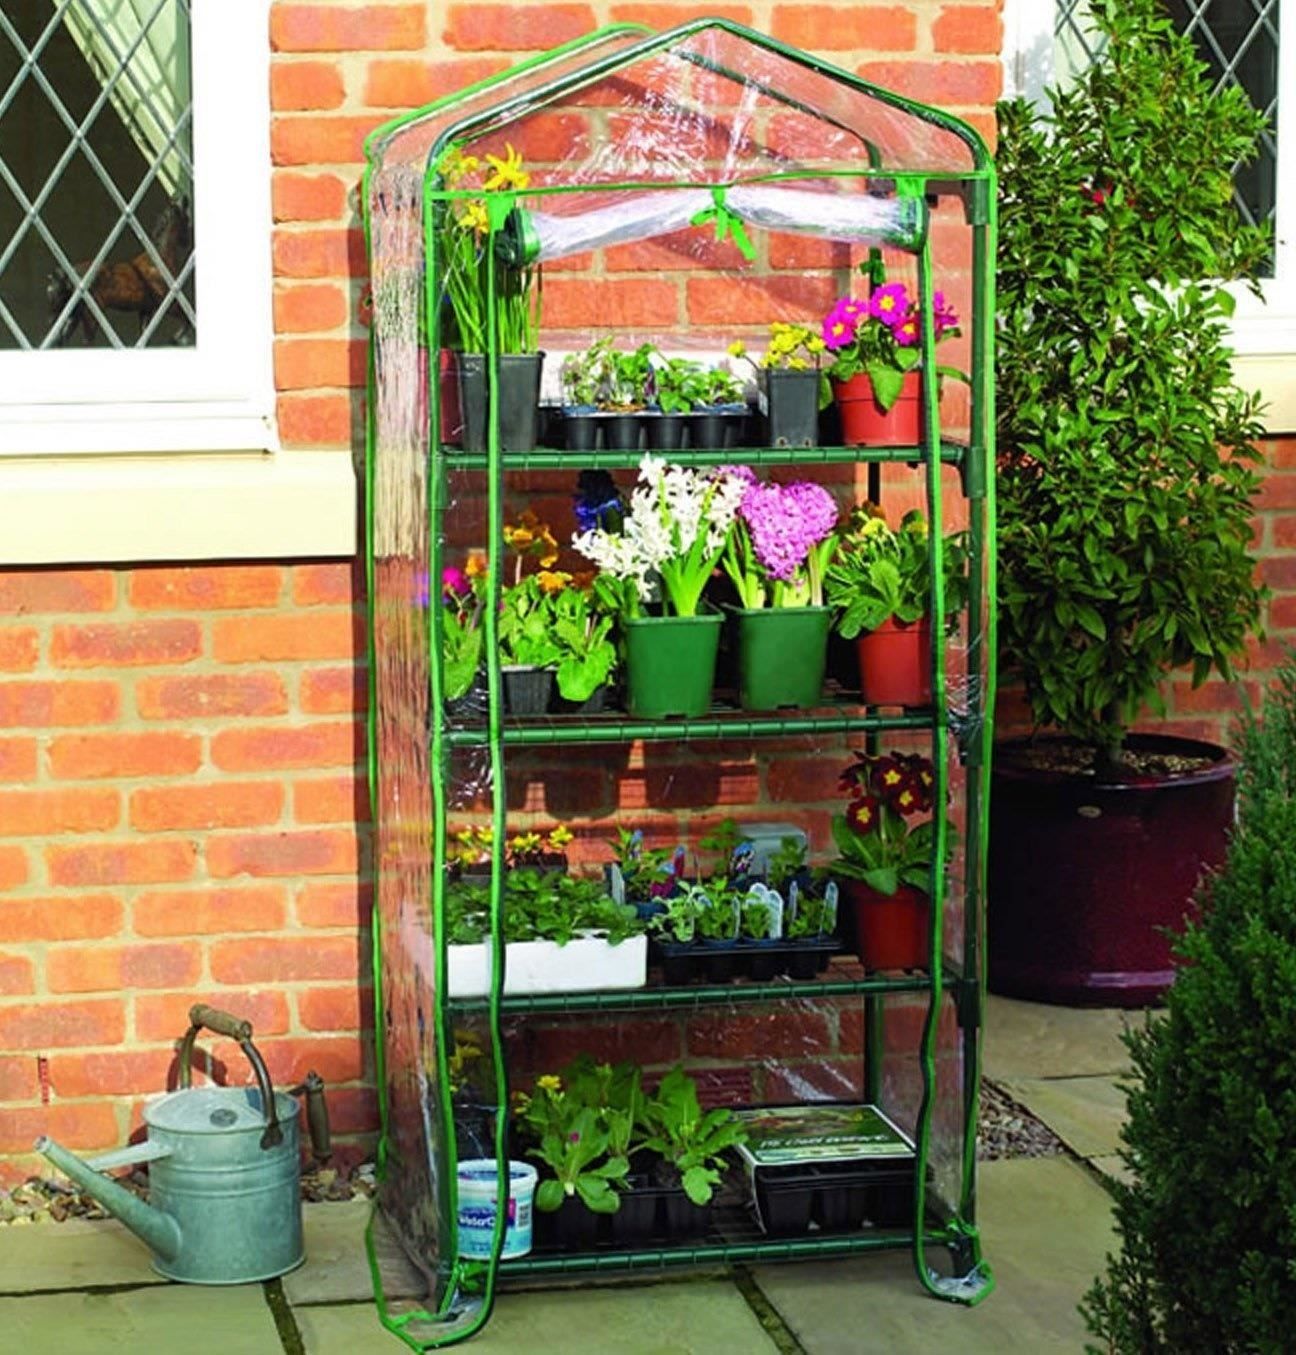 Grow Fresh Herbs & Veggies Indoors with a Tabletop Greenhouse